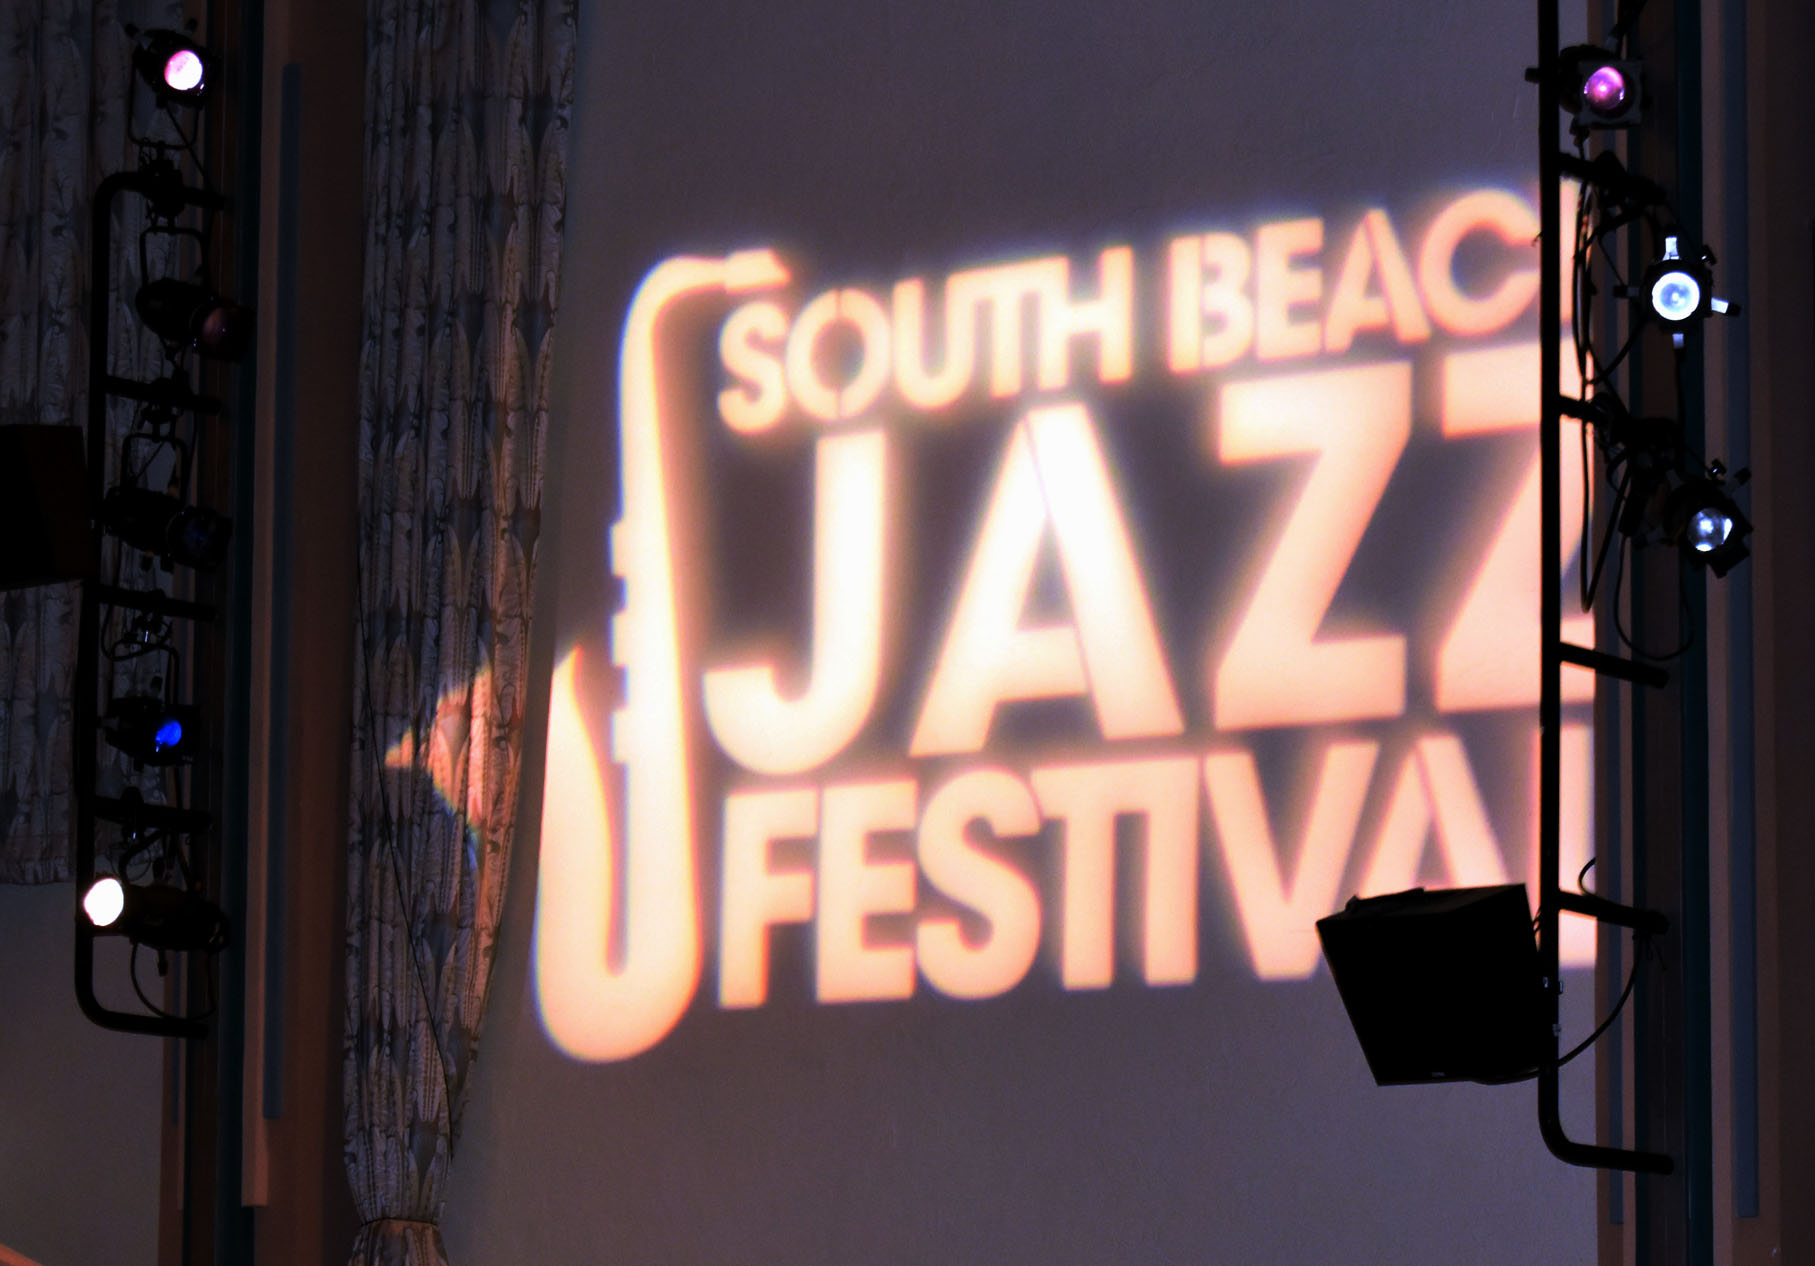 About South Beach Jazz Festival